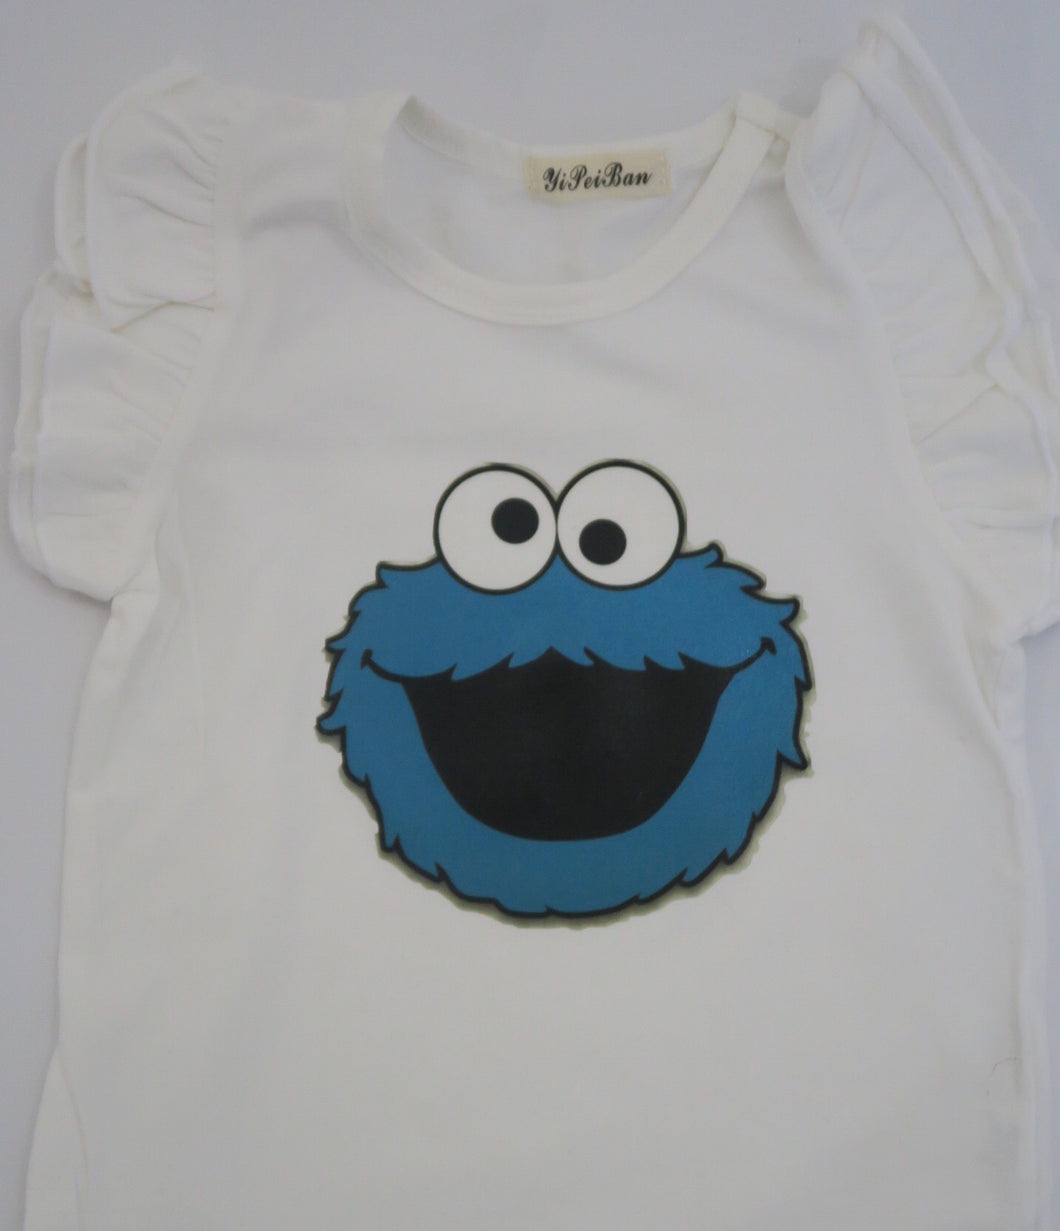 Cookie Monster Top!